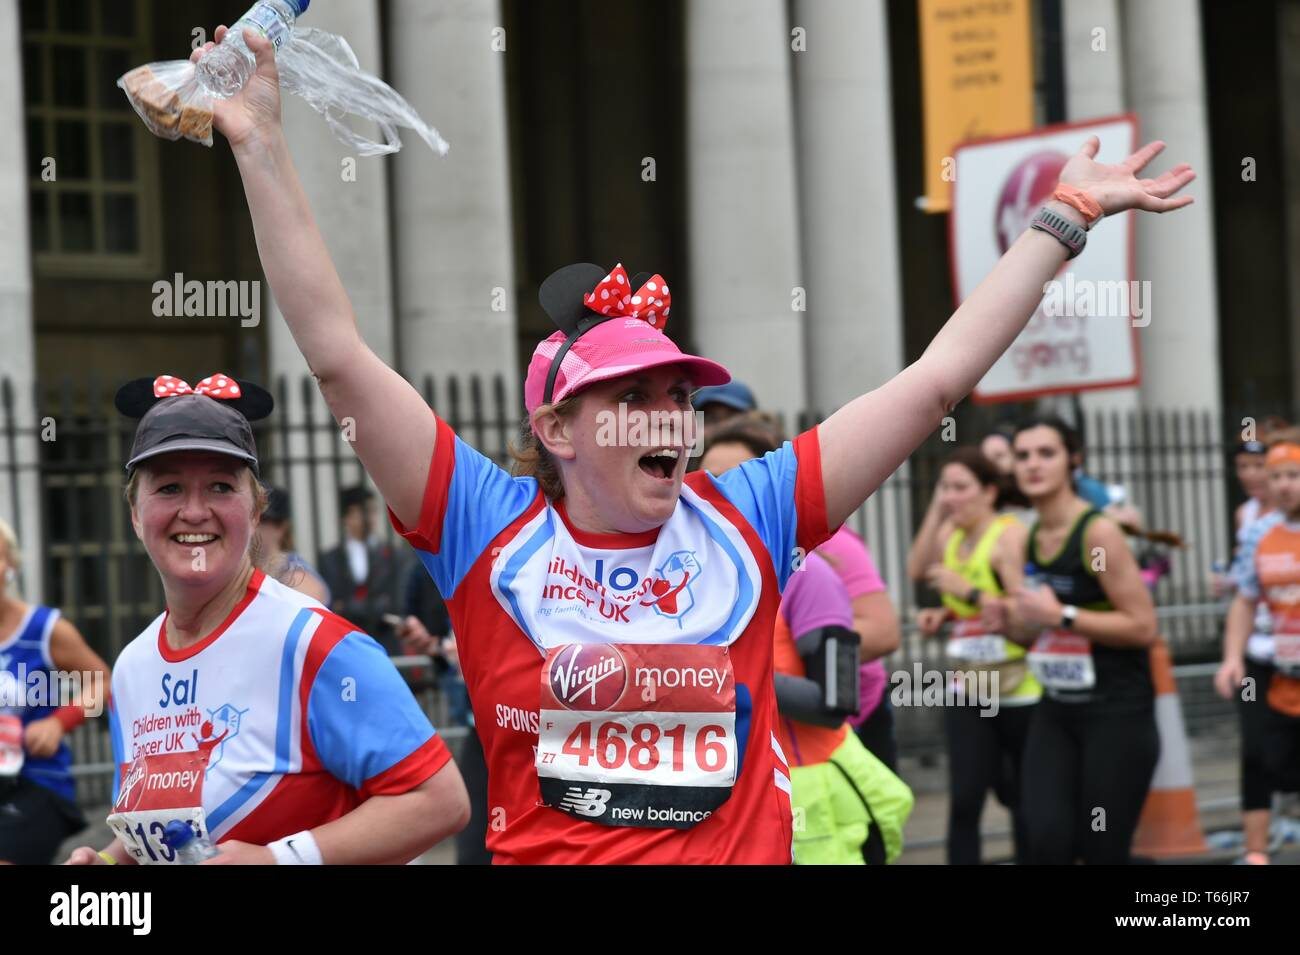 London Marathon 2019, runners at the greenwich section of the race - Stock Image